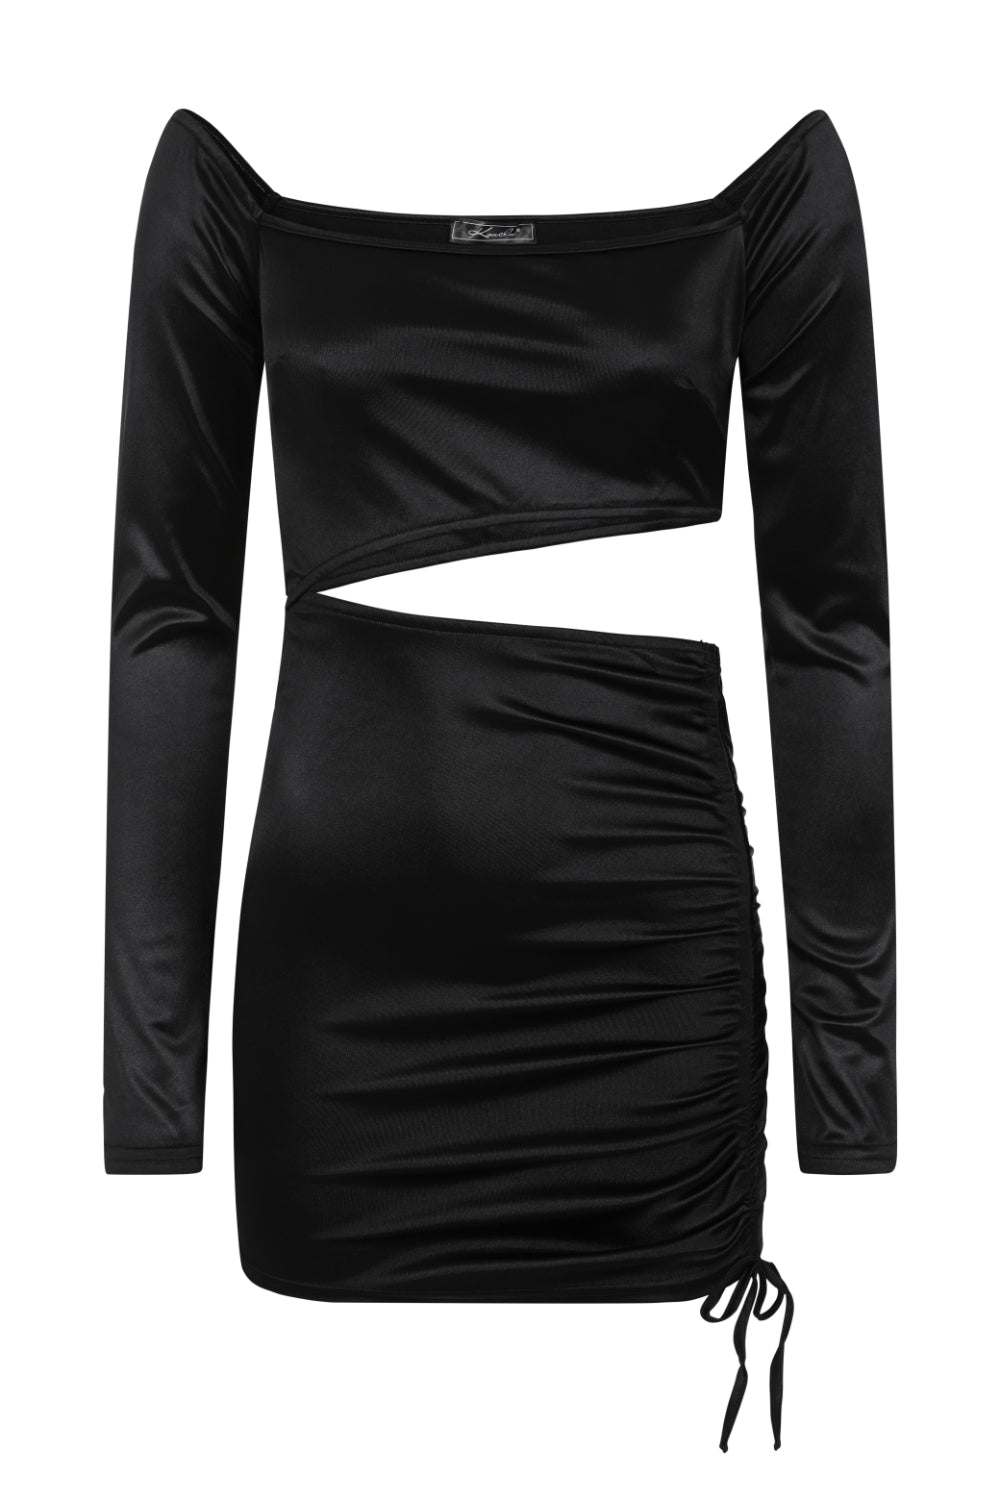 Cut It Out Black Slinky Satin Cut Out Ruched Mini Dress